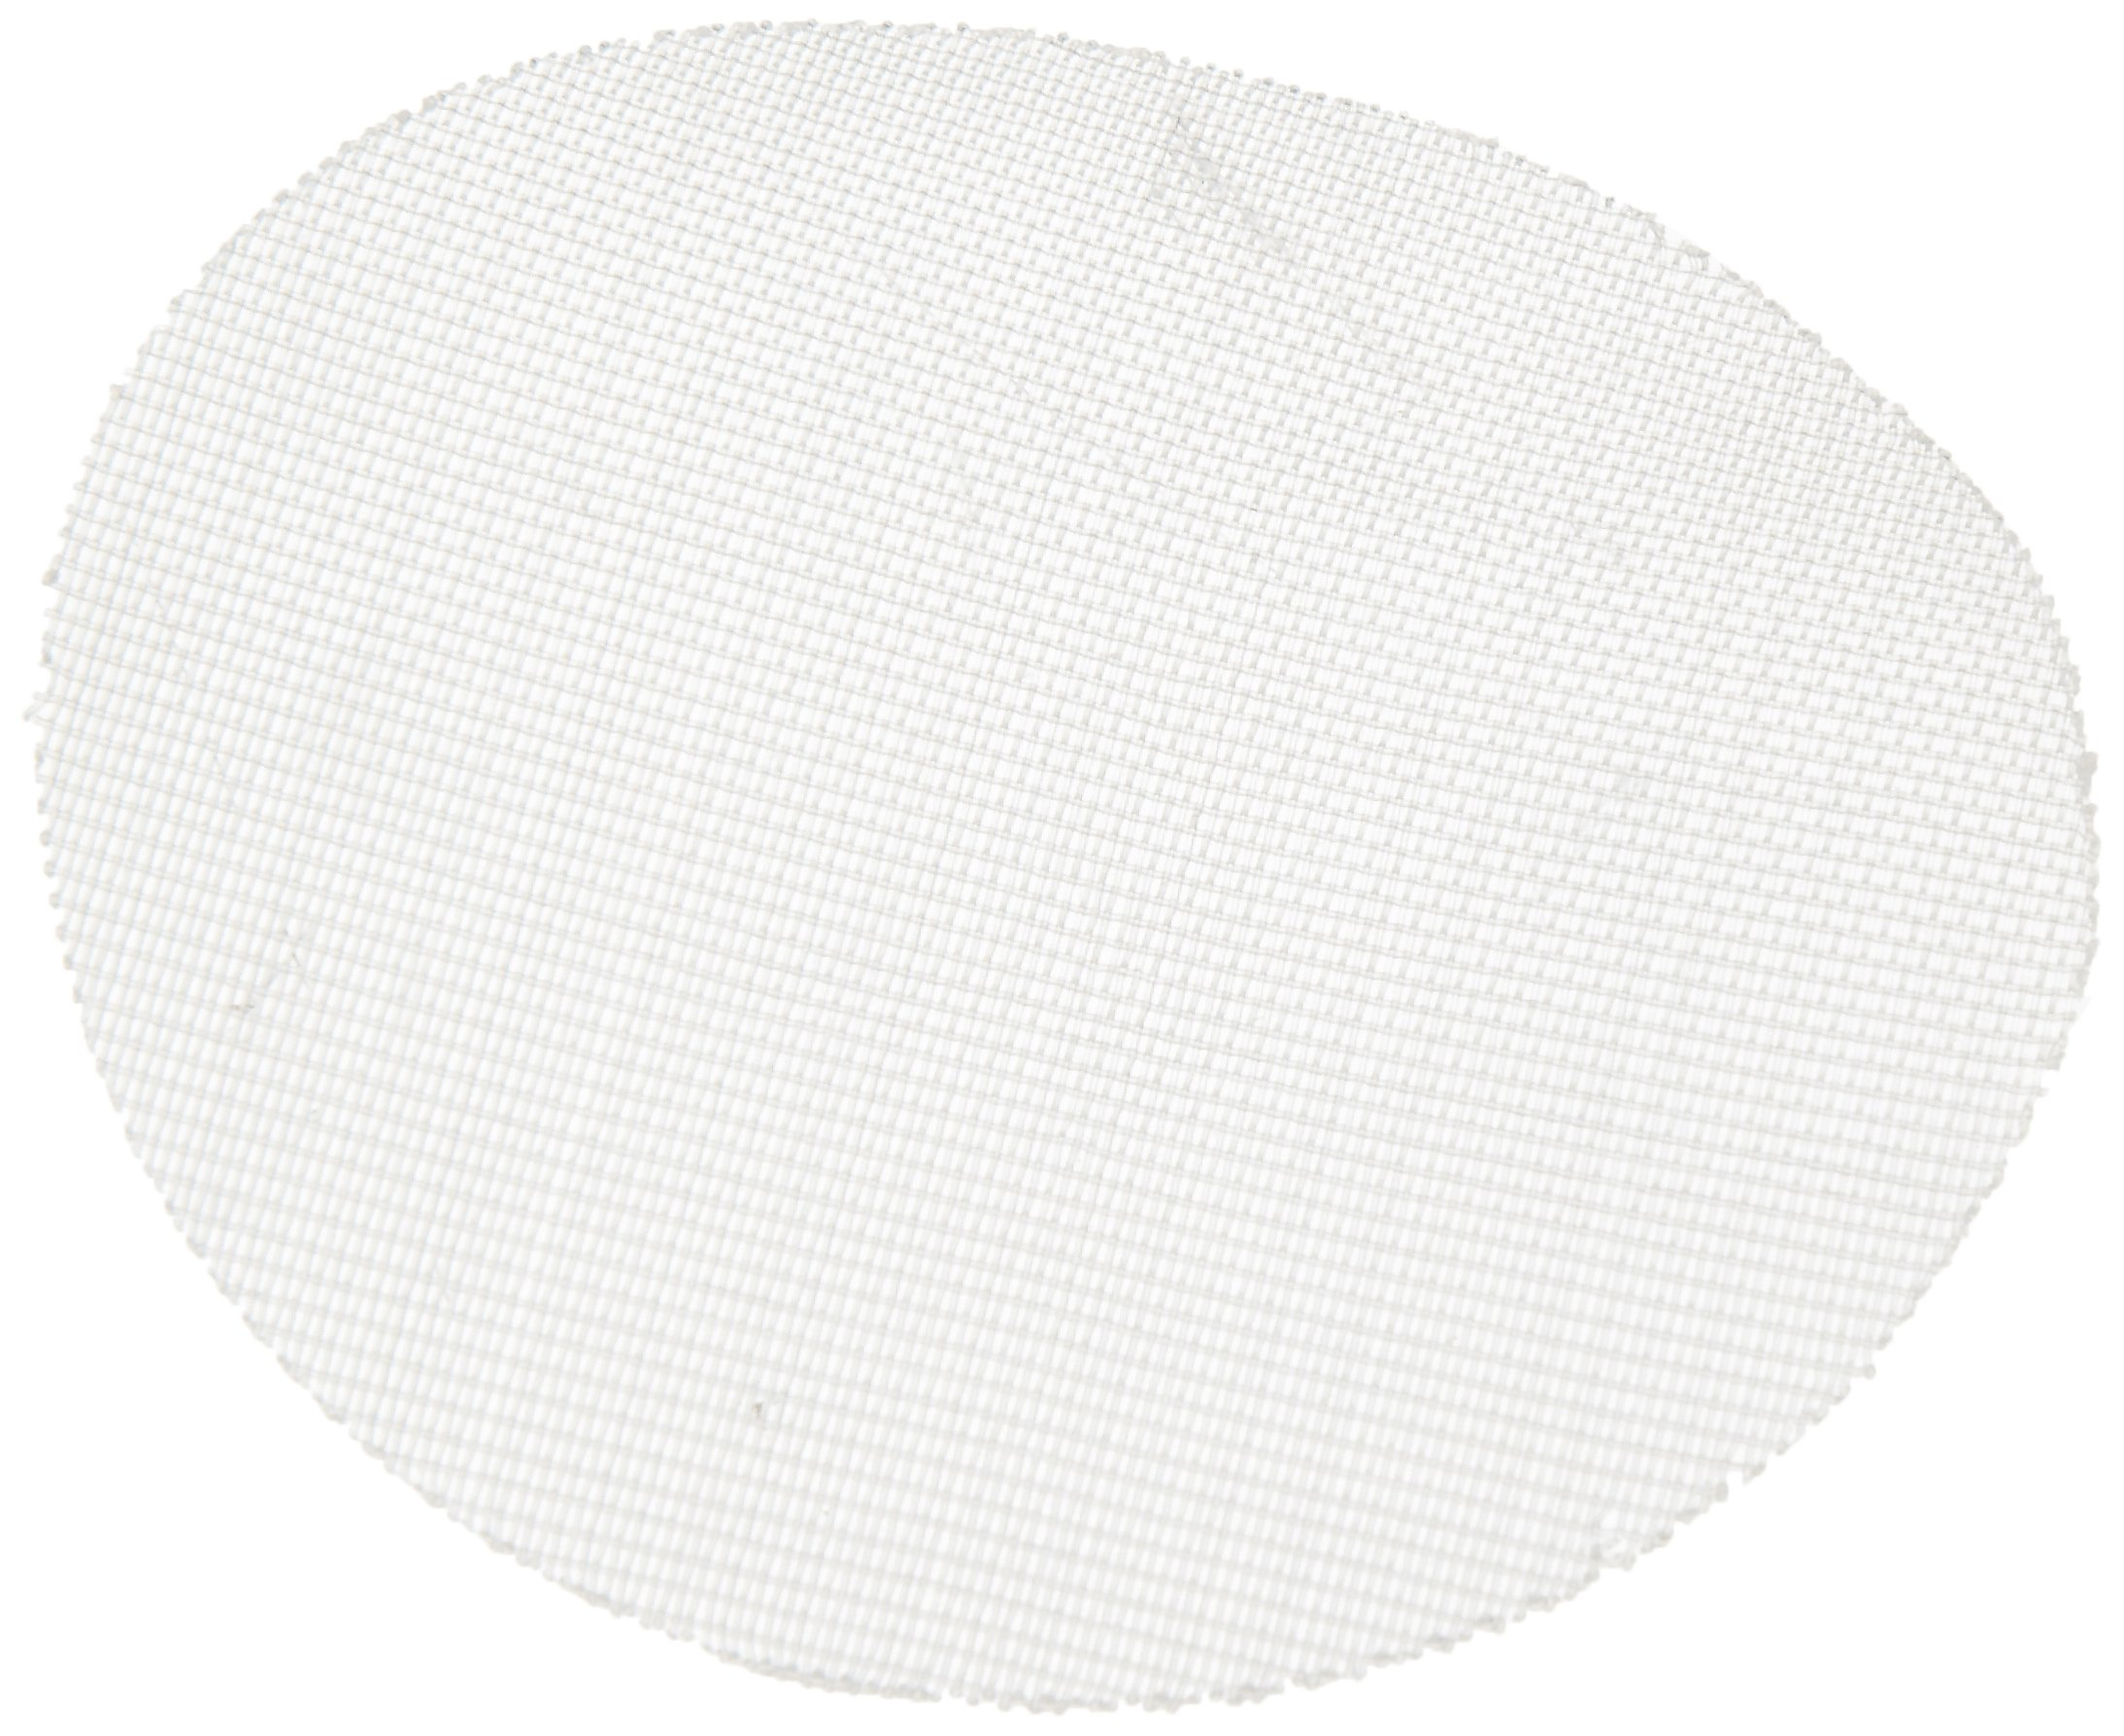 Kartell 1211Z75PK 242845-070 HDPE Buchner Funnel Mesh Pre Filter Disc Holder, 70 mm OD (Pack of 10)